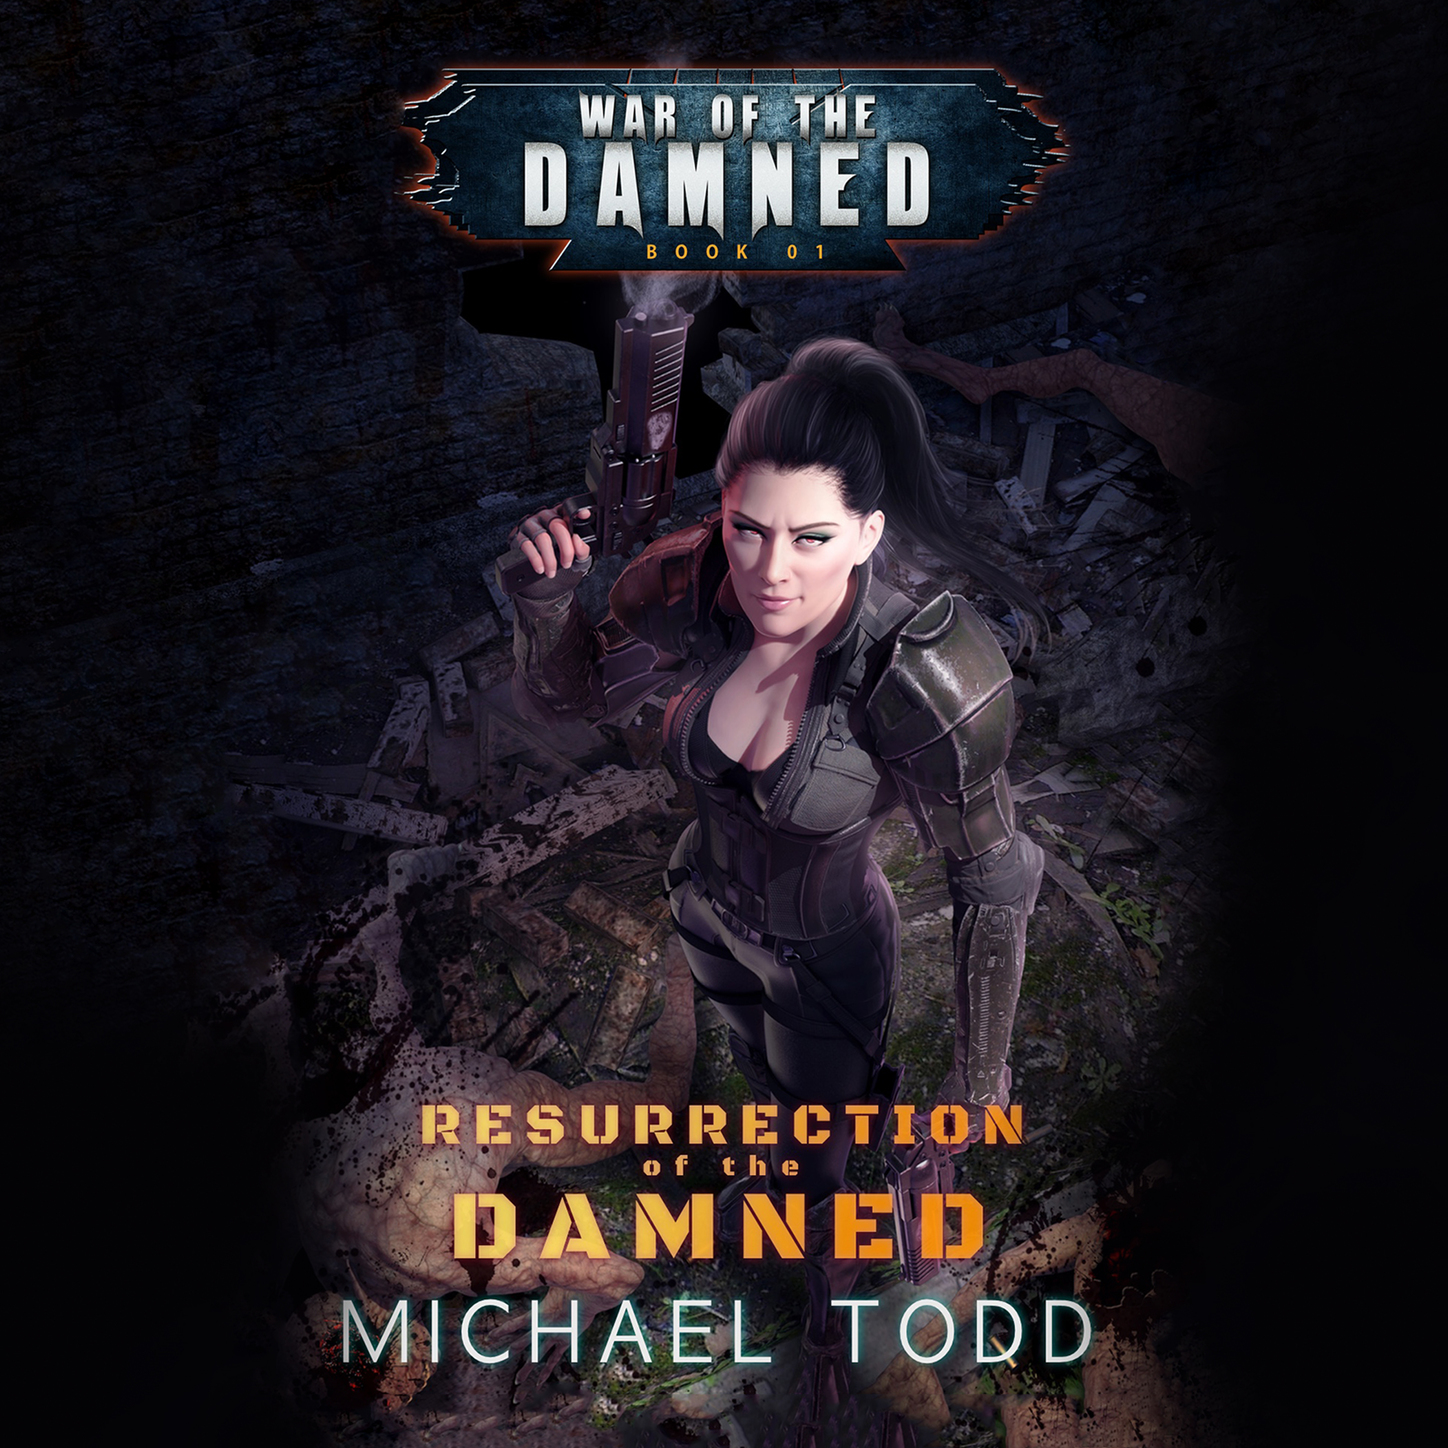 Laurie Starkey S. Resurrection of the Damned - War of the Damned - A Supernatural Action Adventure Opera, Book 1 (Unabridged) batman the resurrection of ra s al ghul